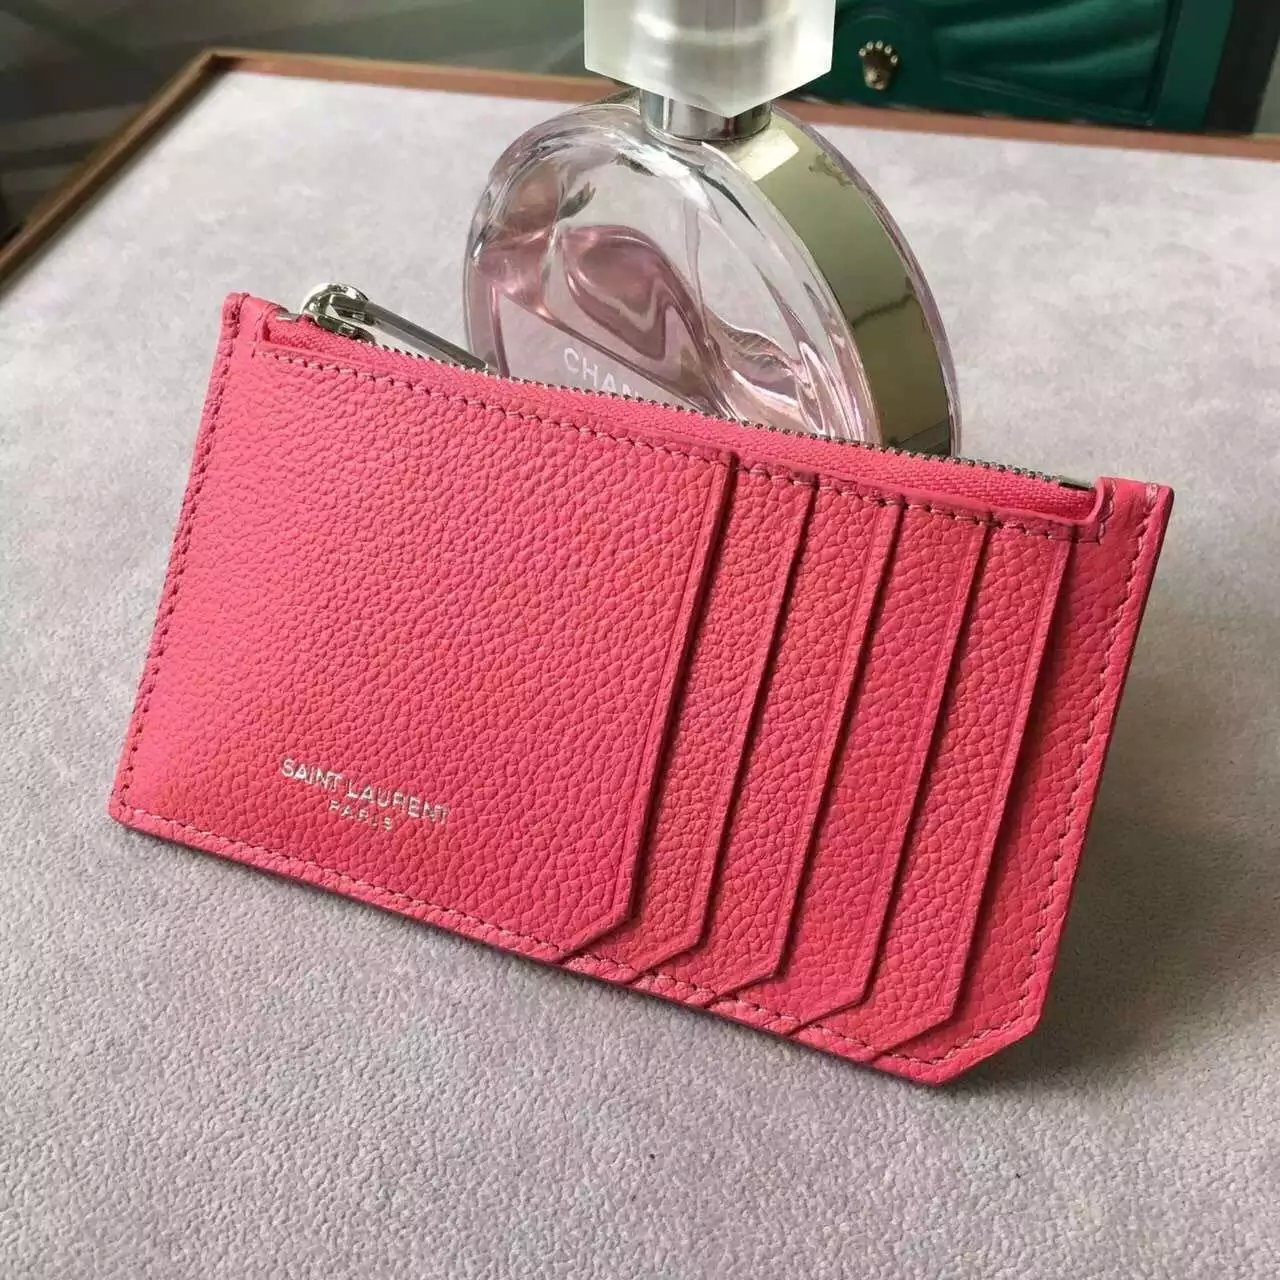 Limited Edition!2016 New Saint Laurent Small Leather Goods Cheap Sale-Saint Laurent Classic Paris 5 Fragments Zip Pouch in Lipstick Fuchsia Leather